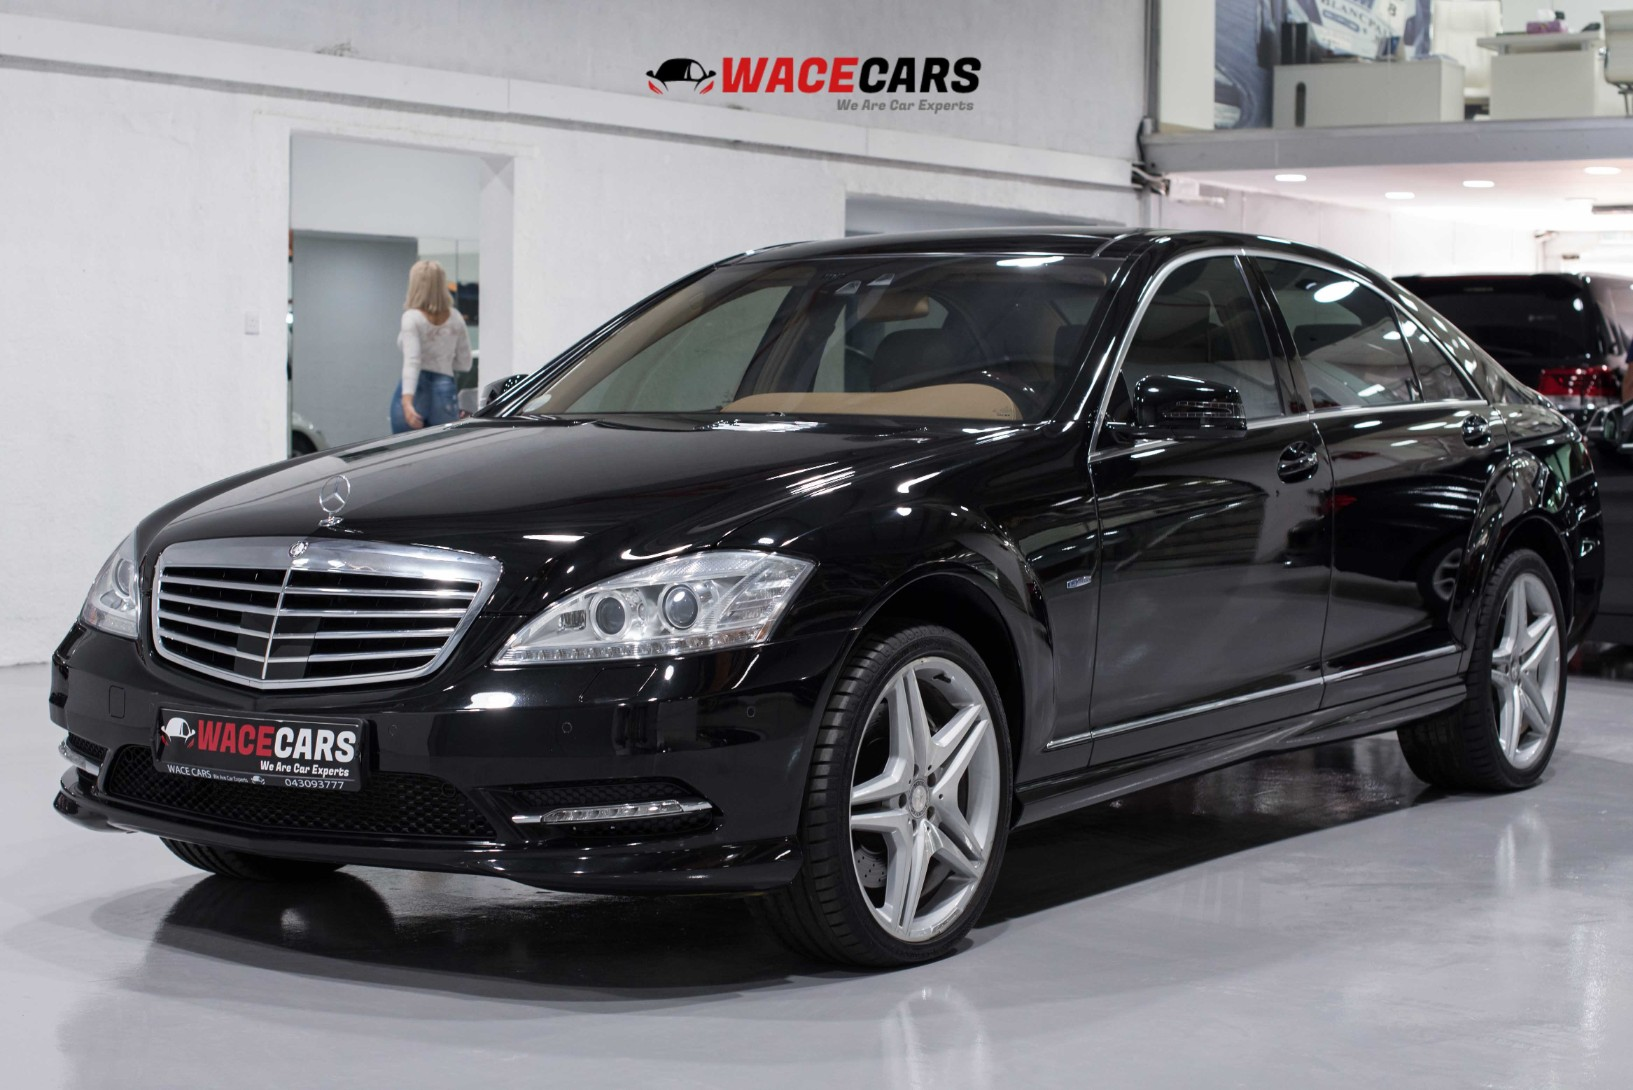 Used Mercedes-Benz S-Class 2012 for sale in Dubai